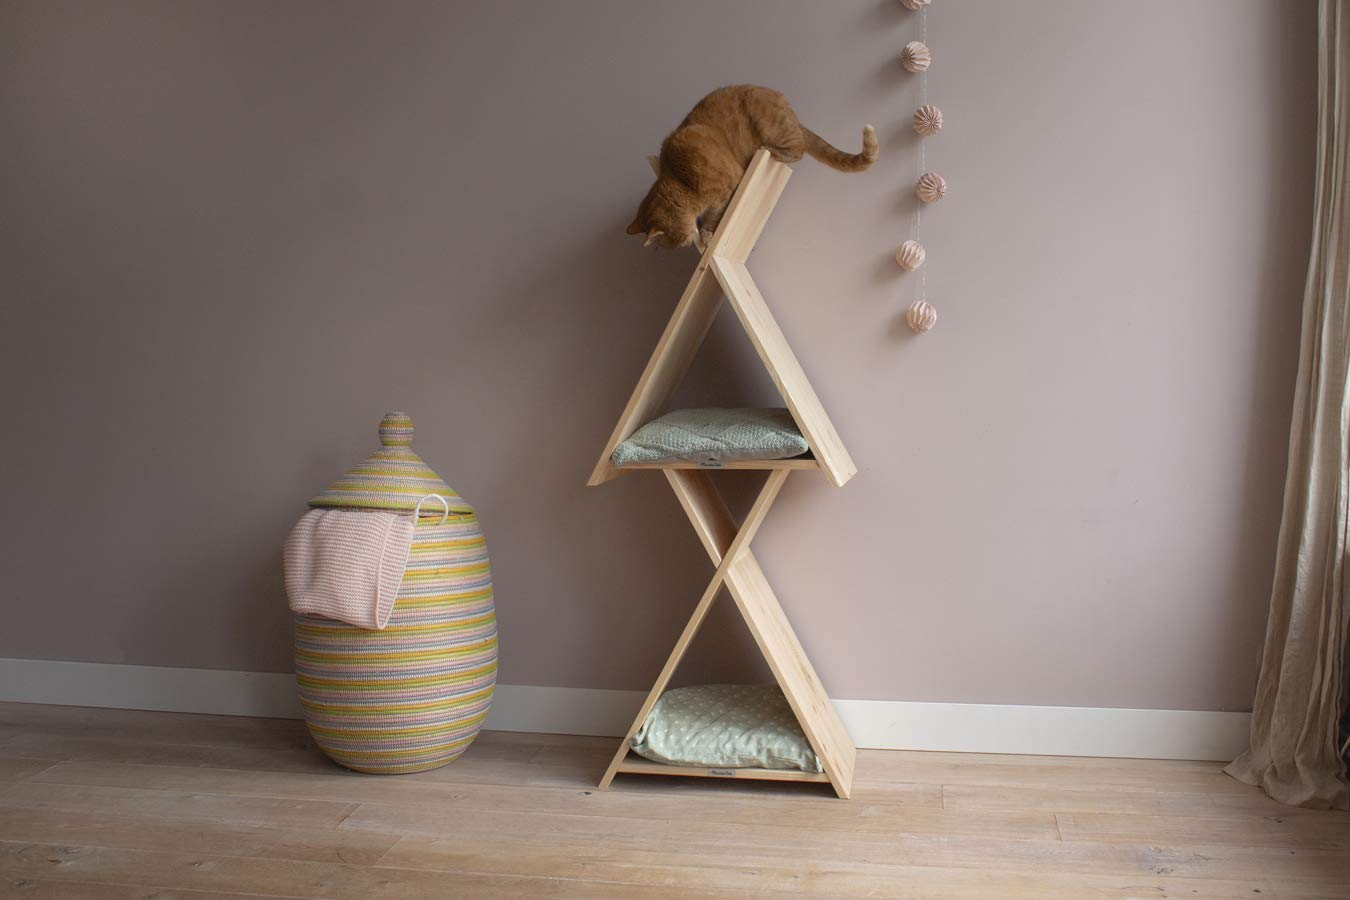 MaximaVida Deluxe wooden Cat Hotel 2 individual teepees on top of each other scratch polecut at an angle